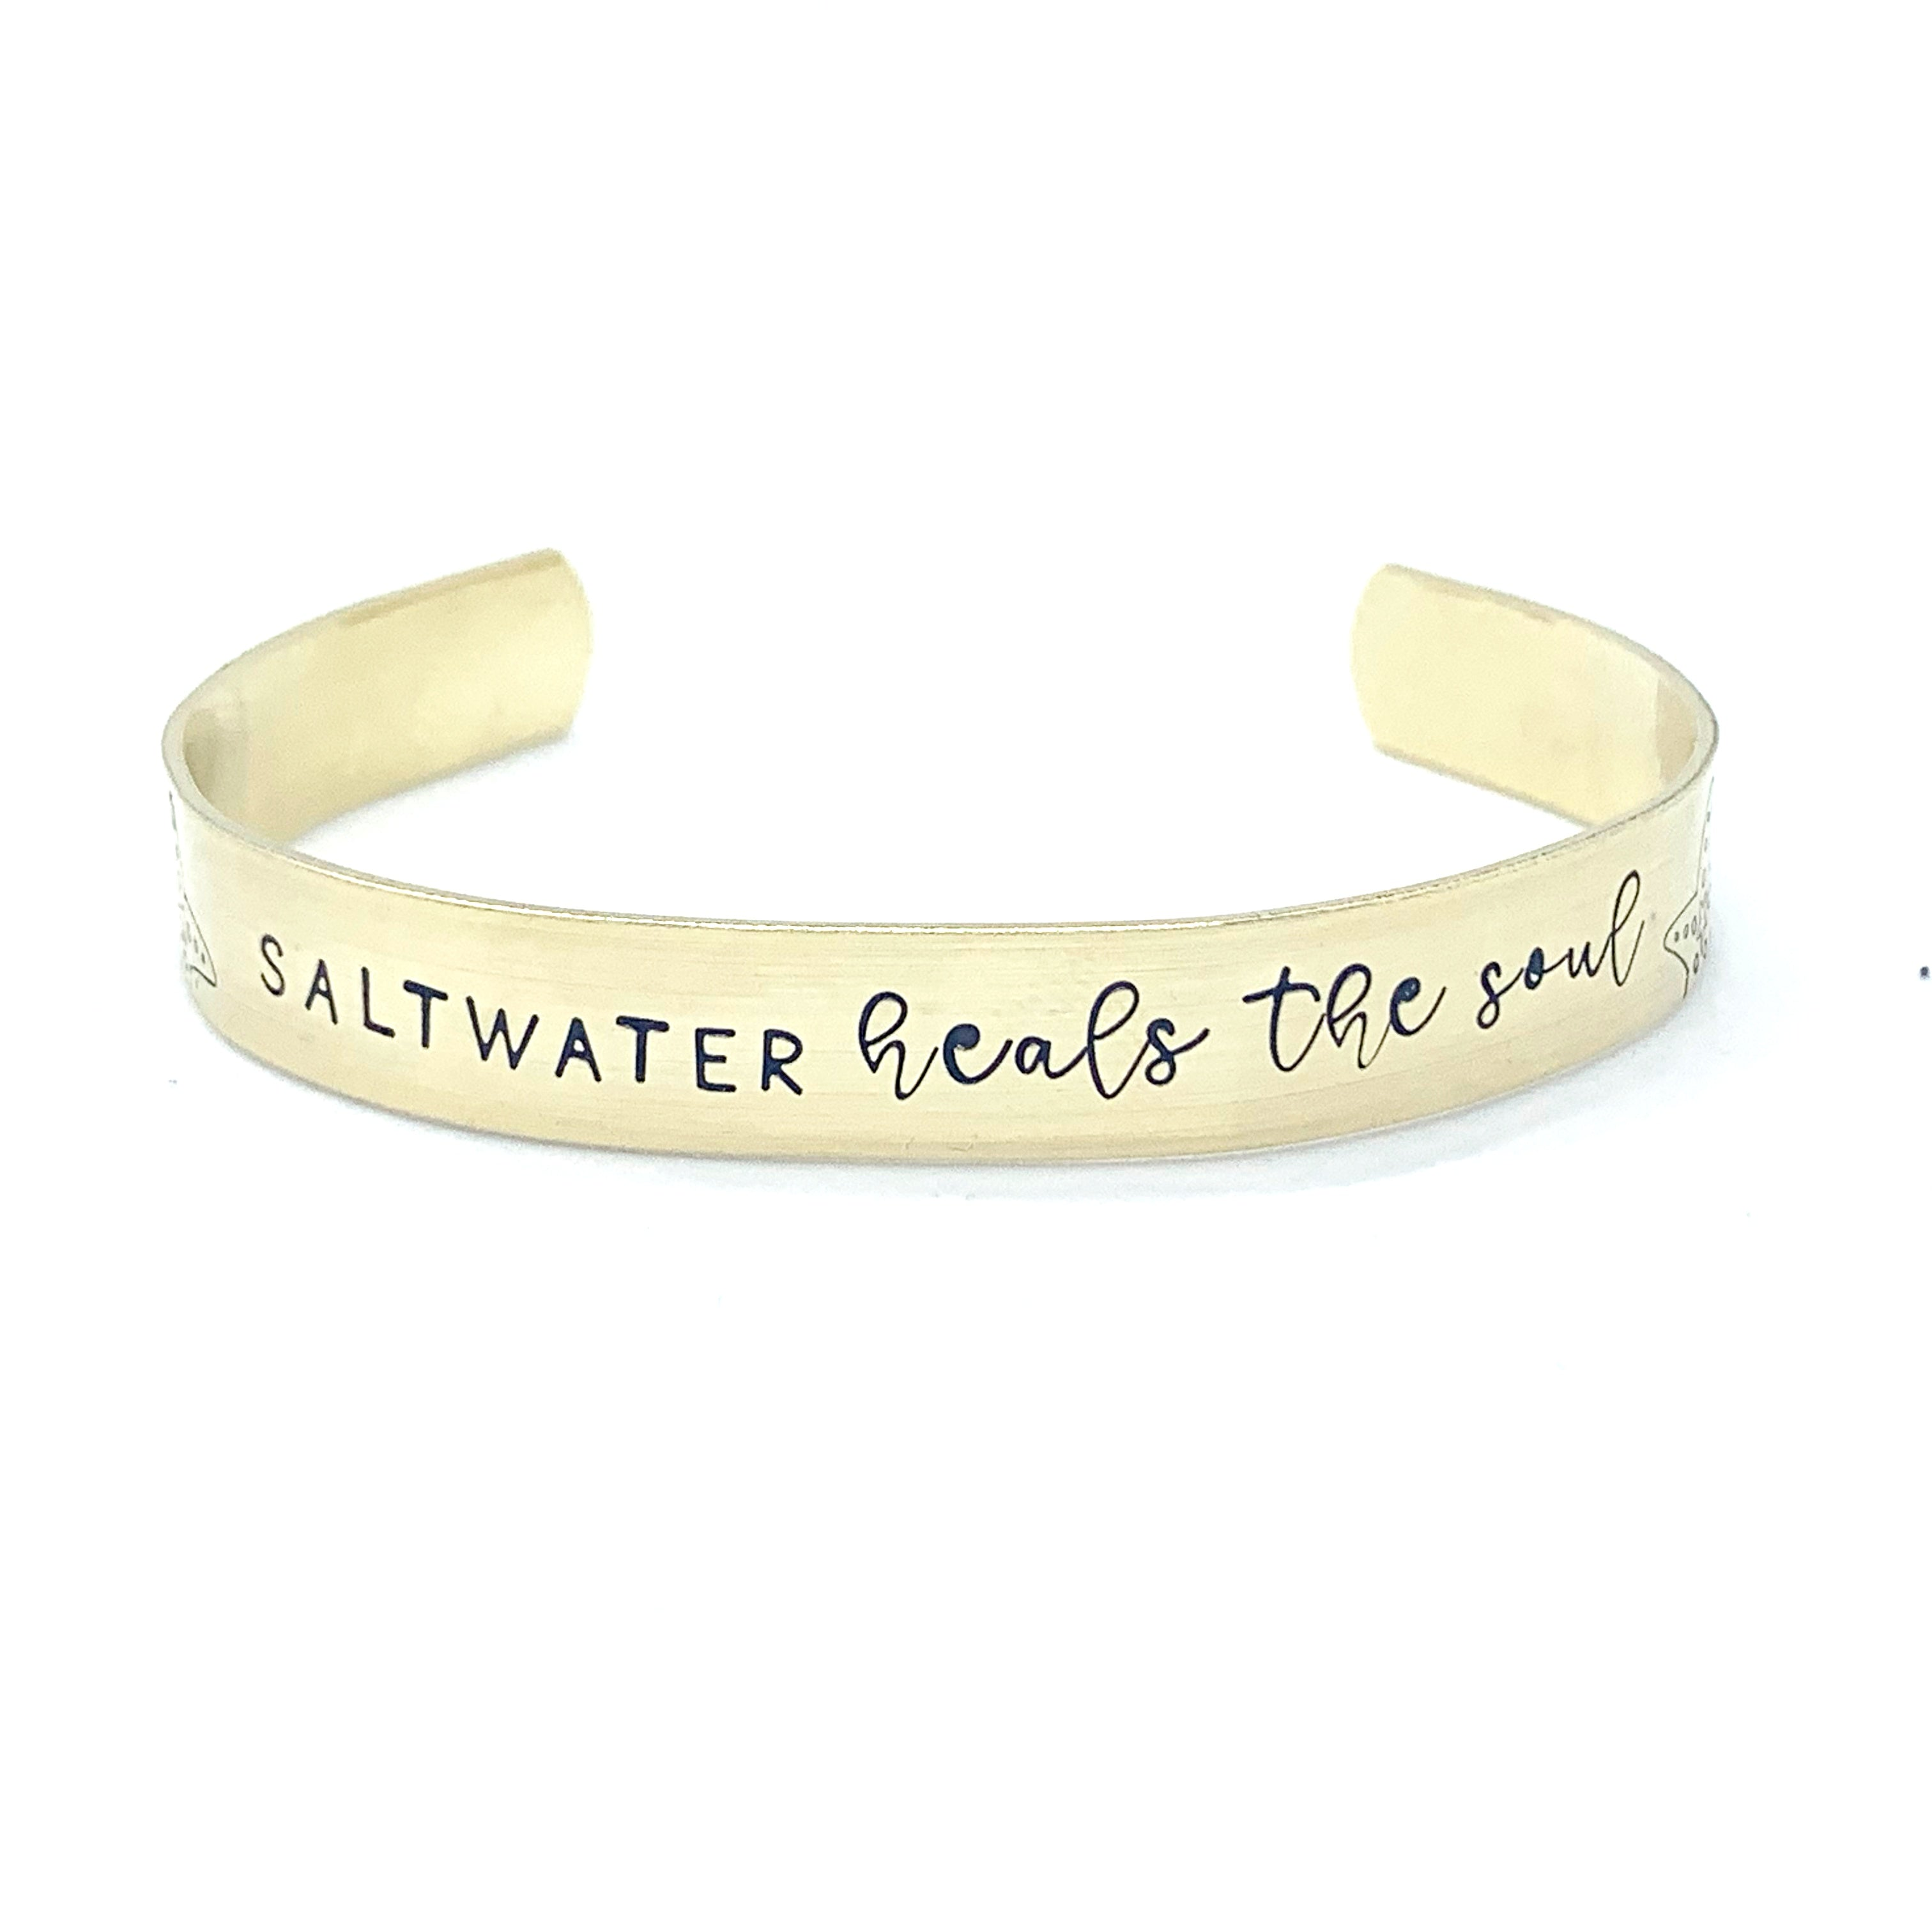 ⅜ inch Brass Cuff - Saltwater Heals The Soul